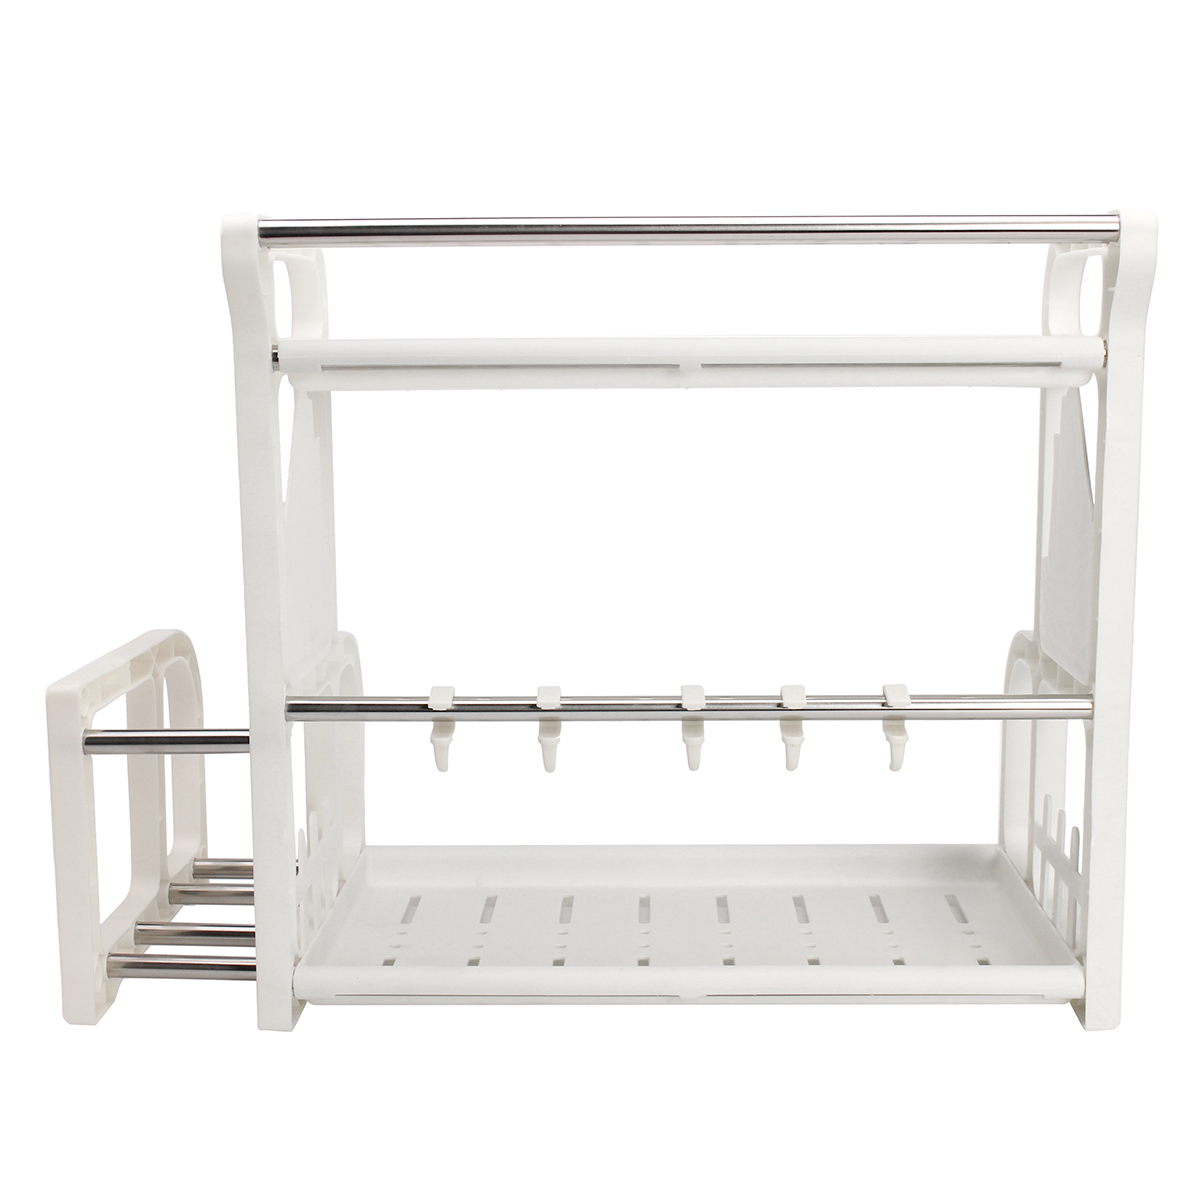 Double layer spice jar rack storage shelf pantry kitchen for Double kitchen cupboard